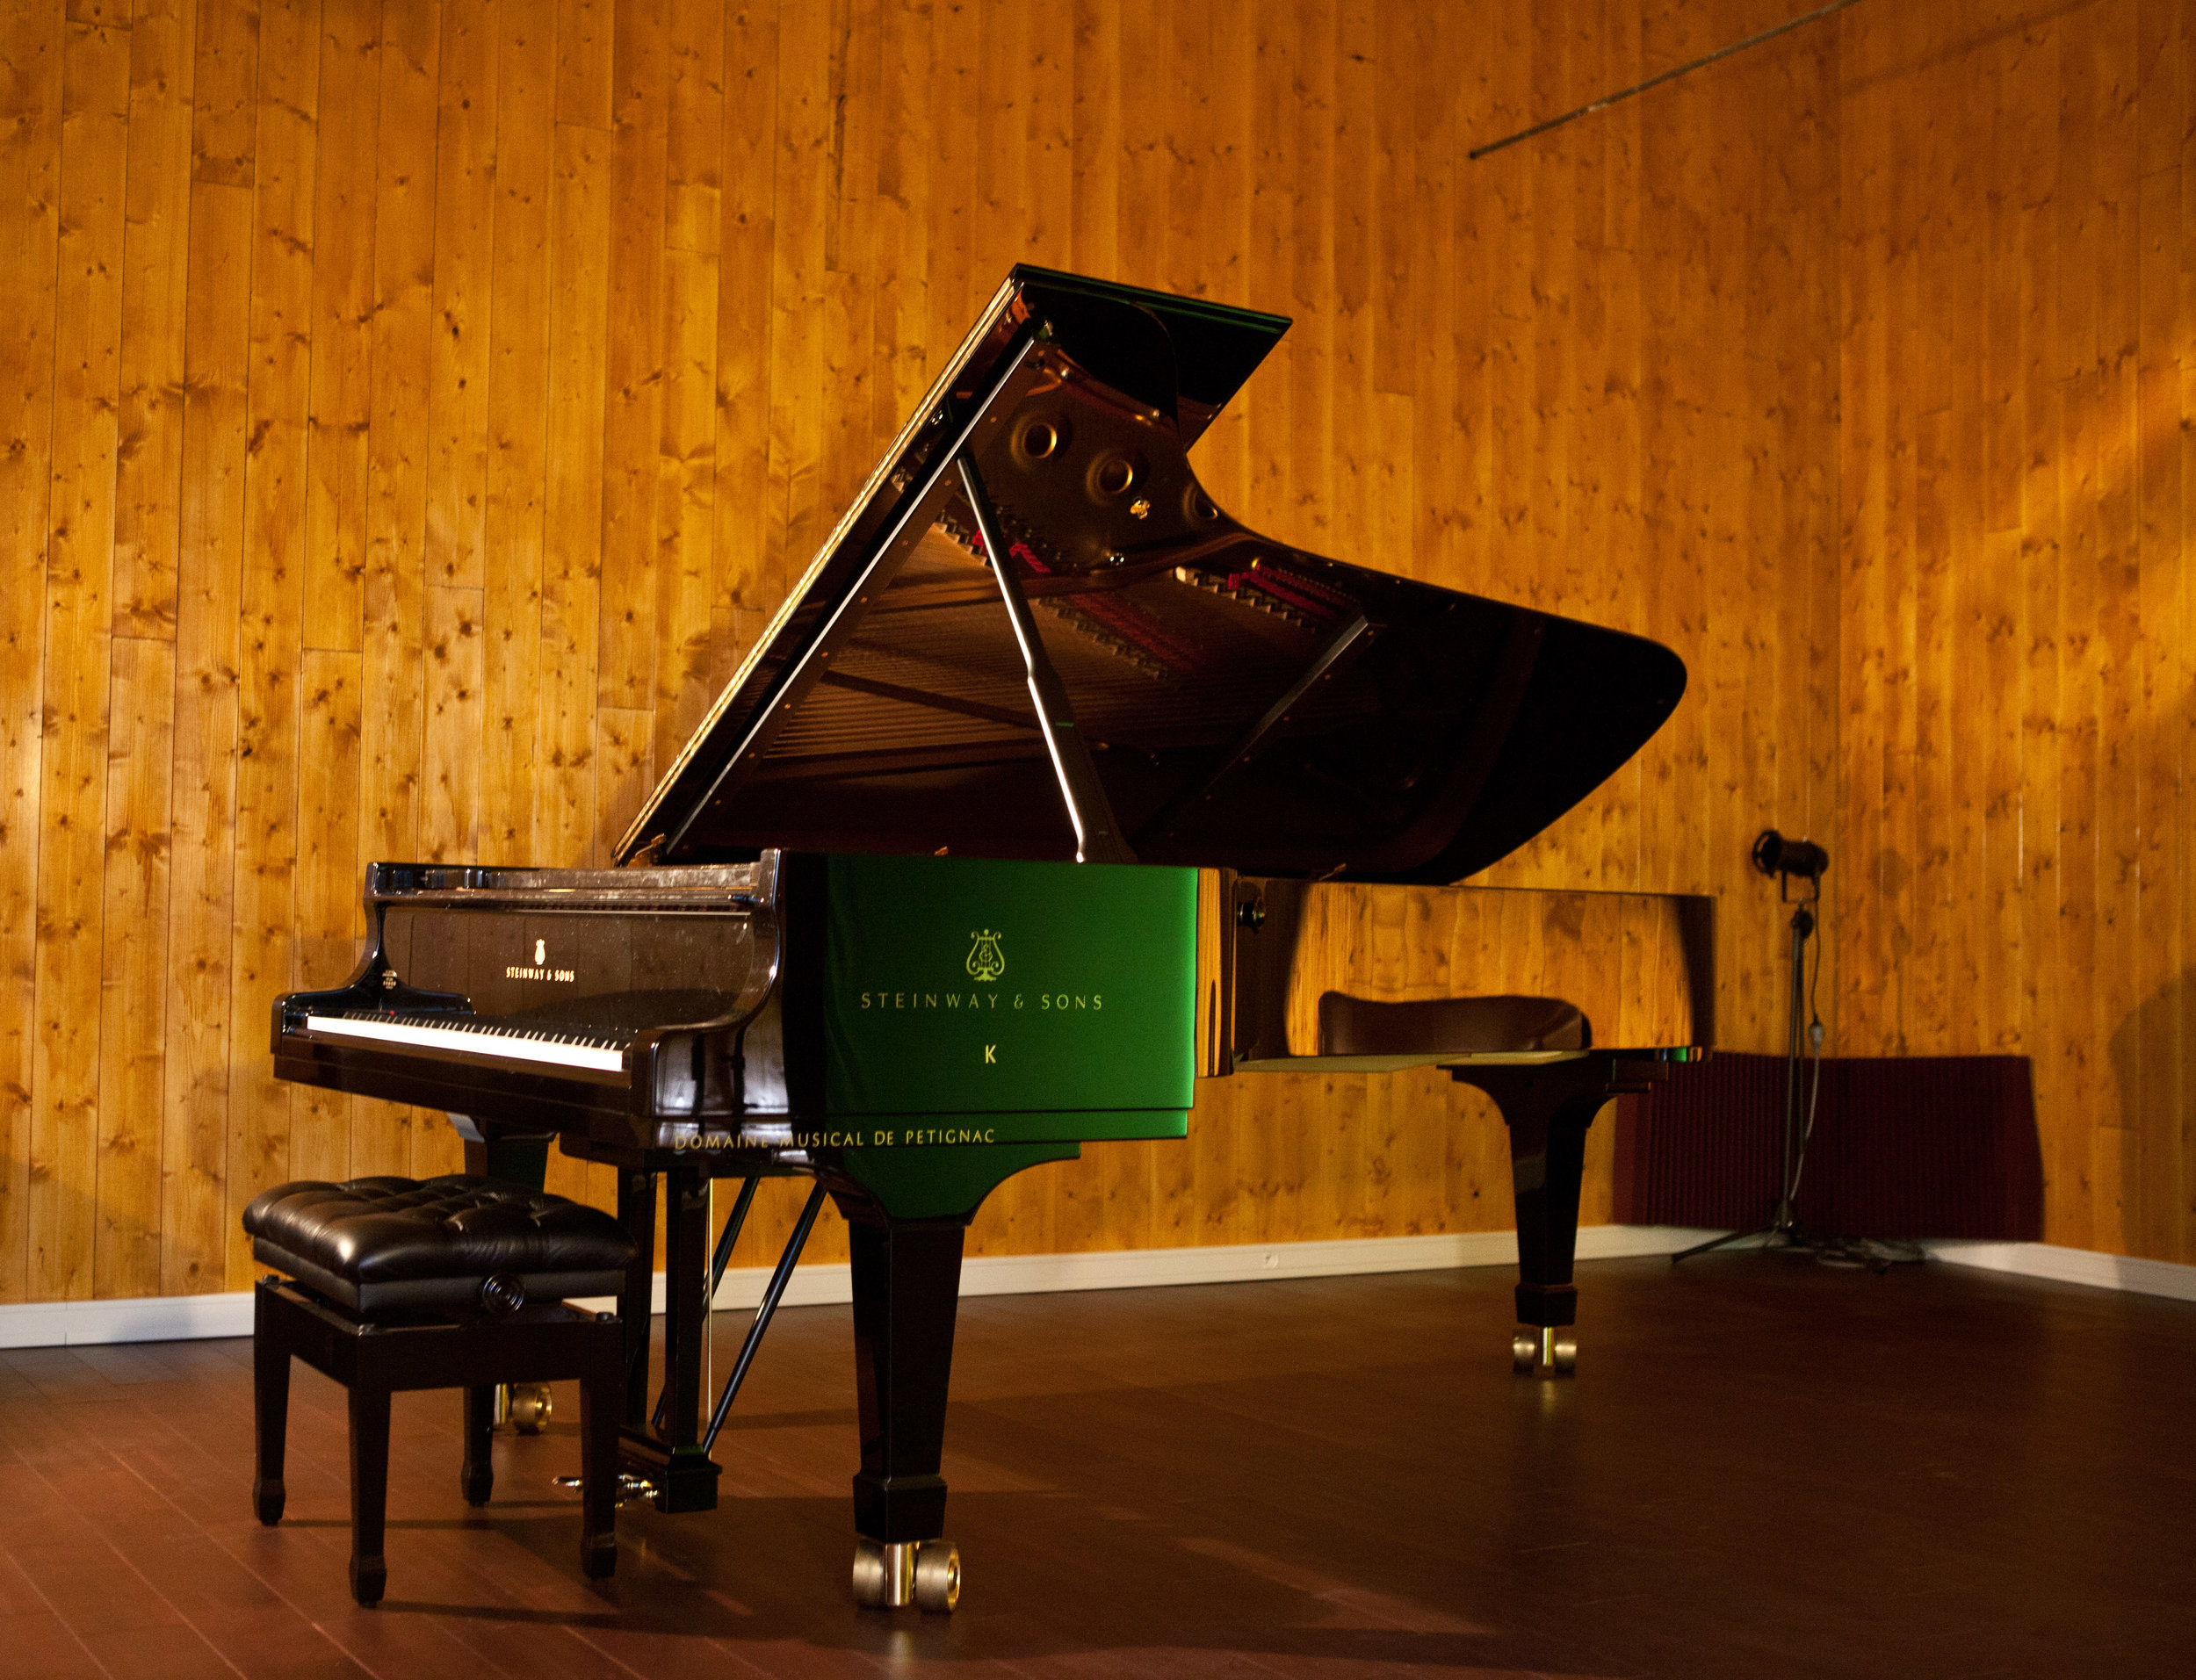 Steinway & Sons Grand Concert D 274 - Anatole Studio